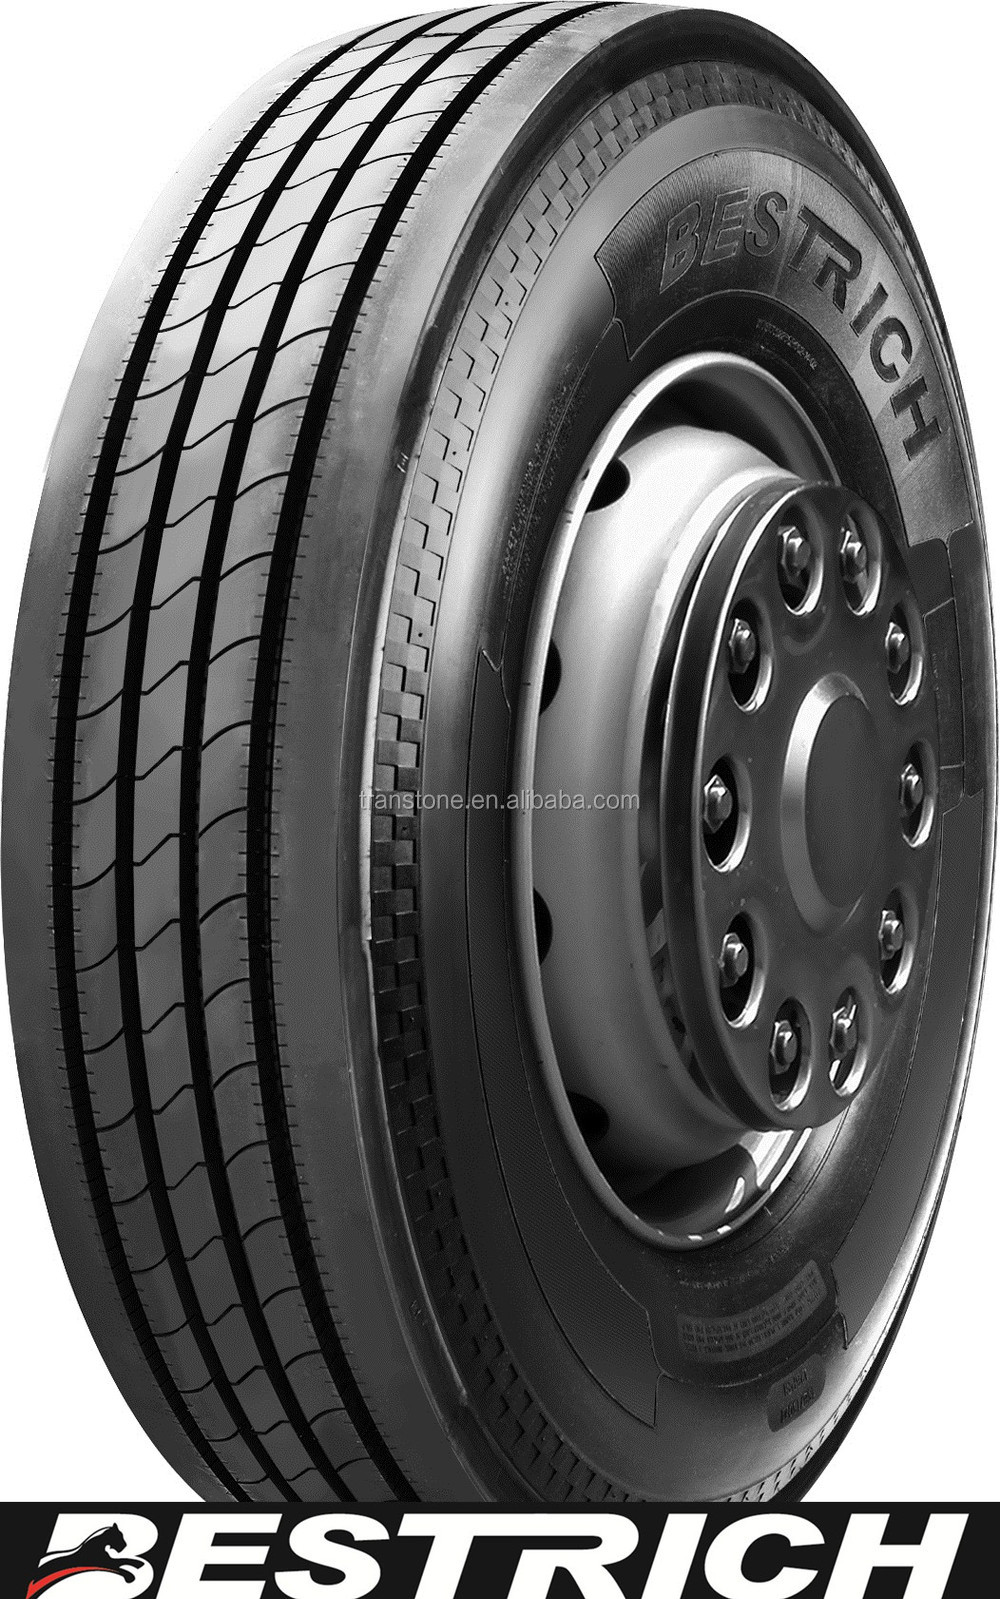 2017 NEW TIRE WITH EU LABEL FOR GERMANY MARKET 235/75R17.5 275/79R22.5